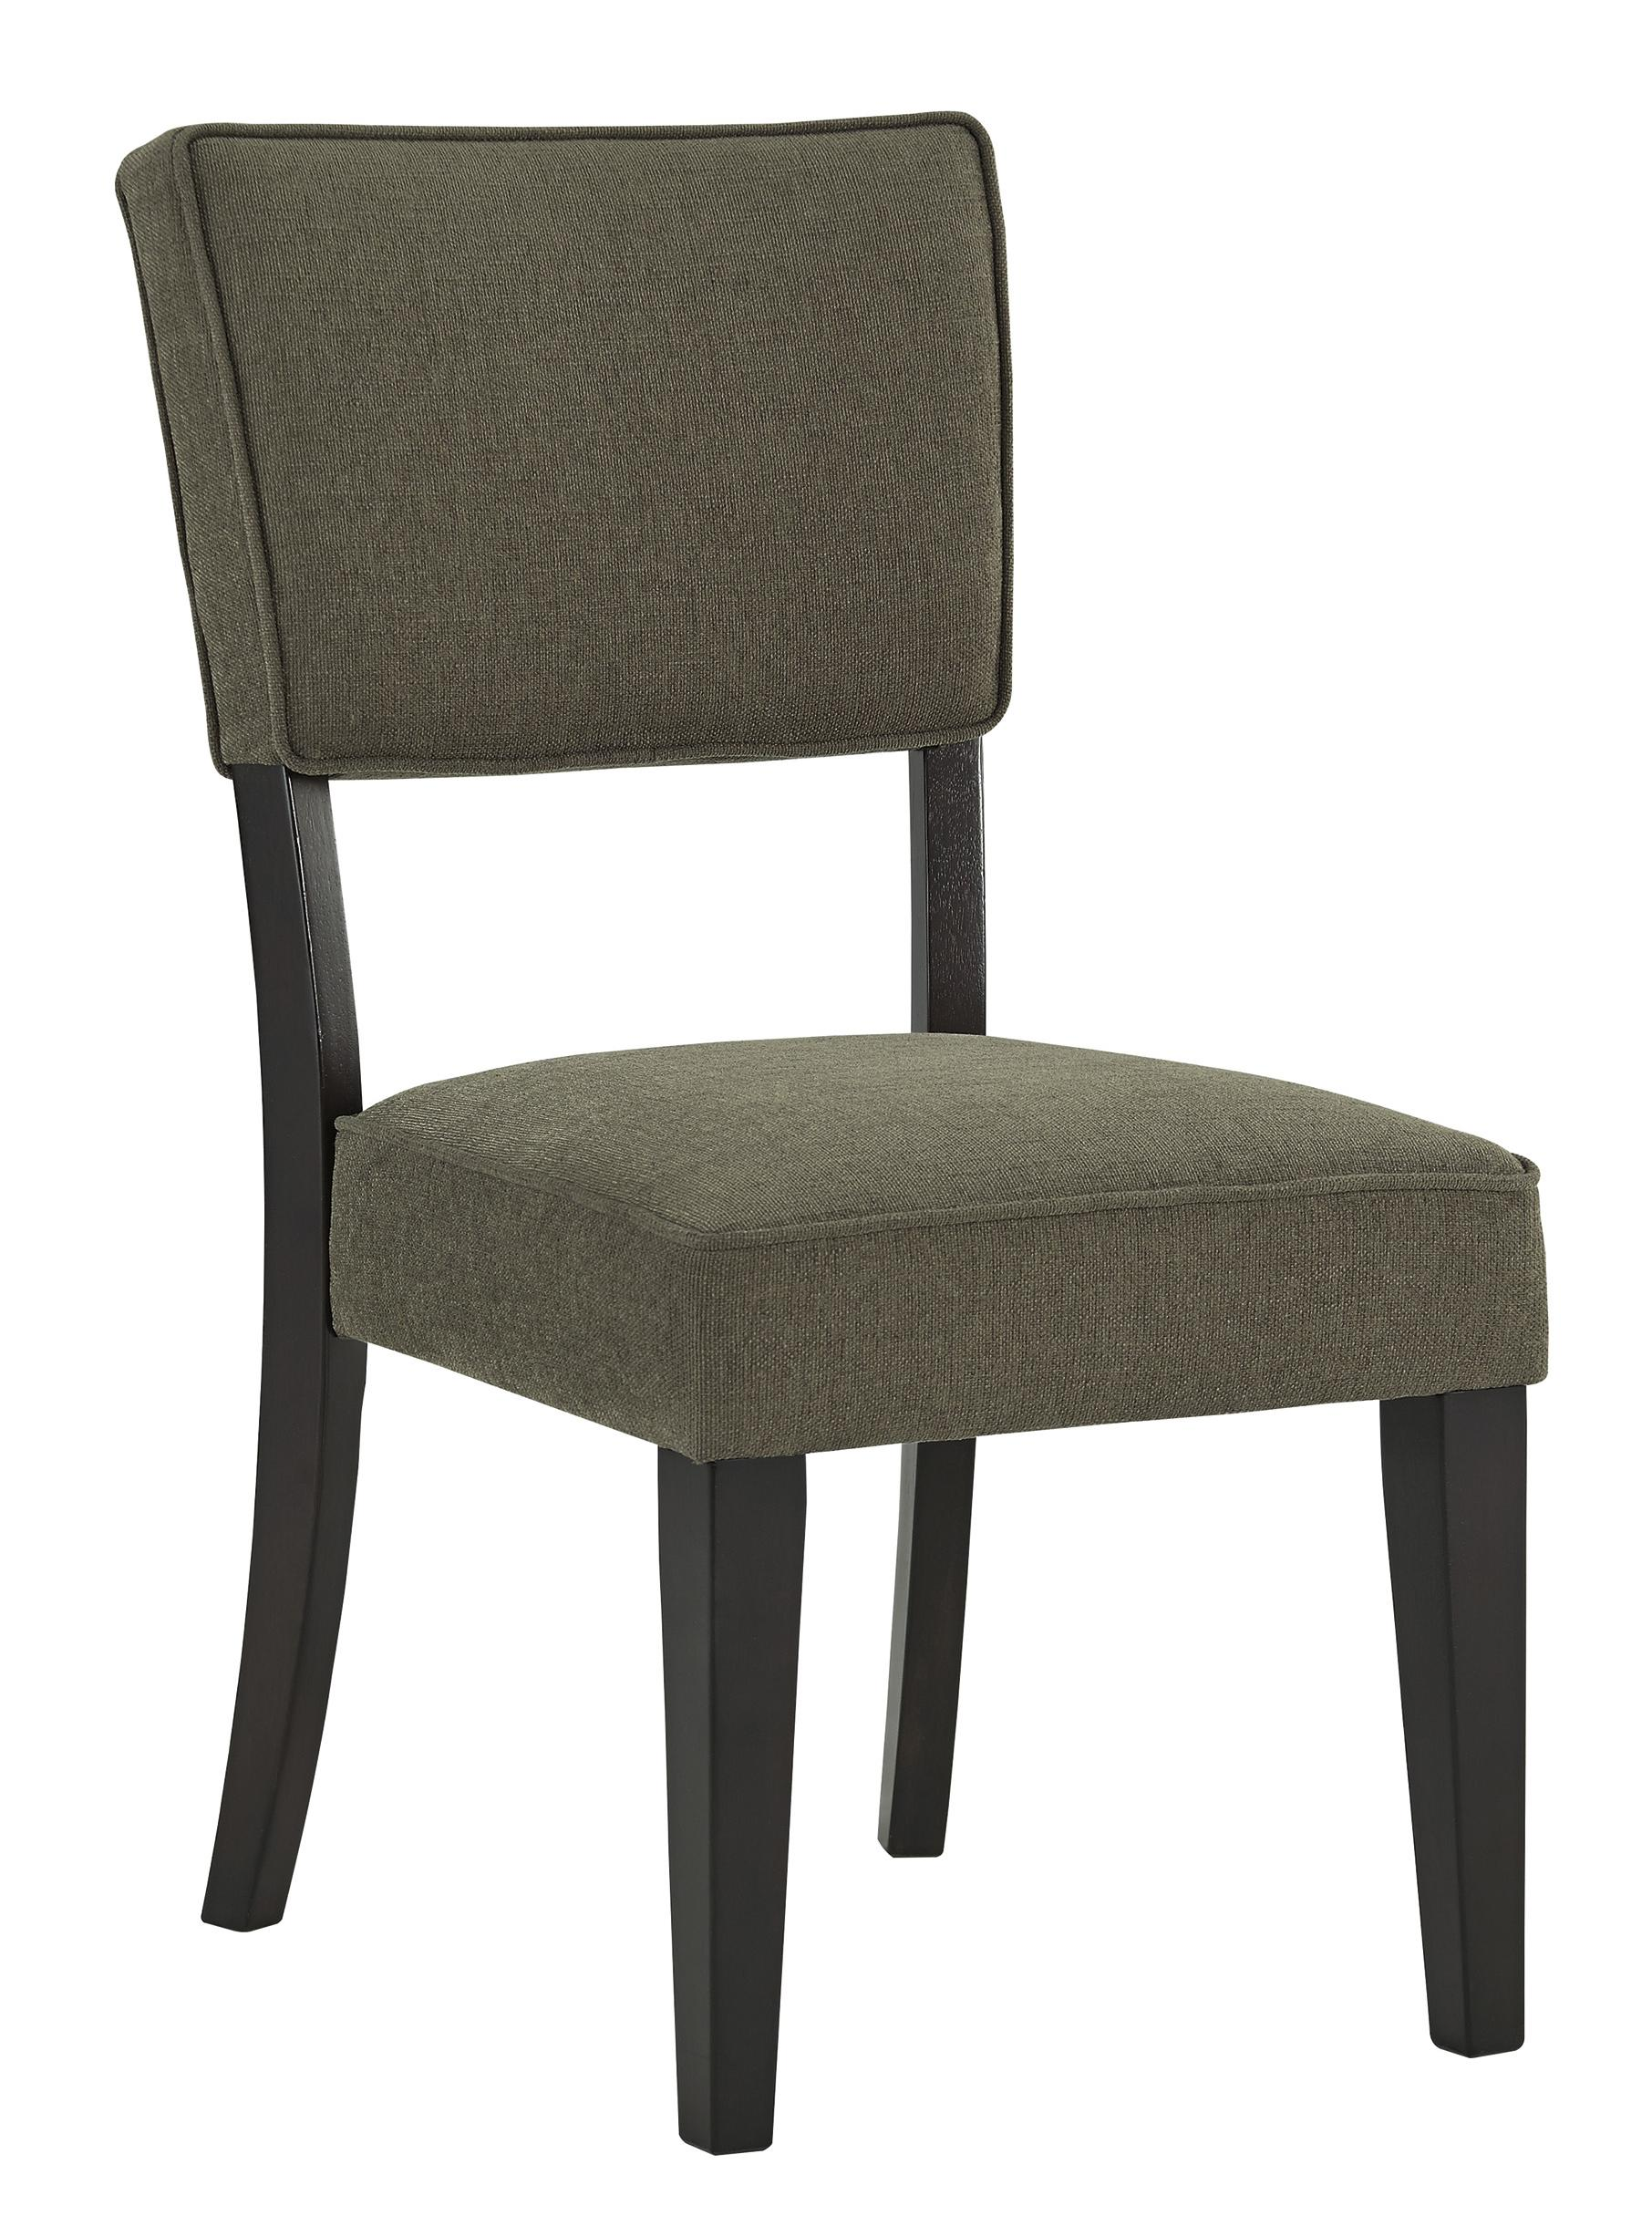 Signature Design by Ashley Gavelston Dining Upholstered Side Chair - Item Number: D532-02